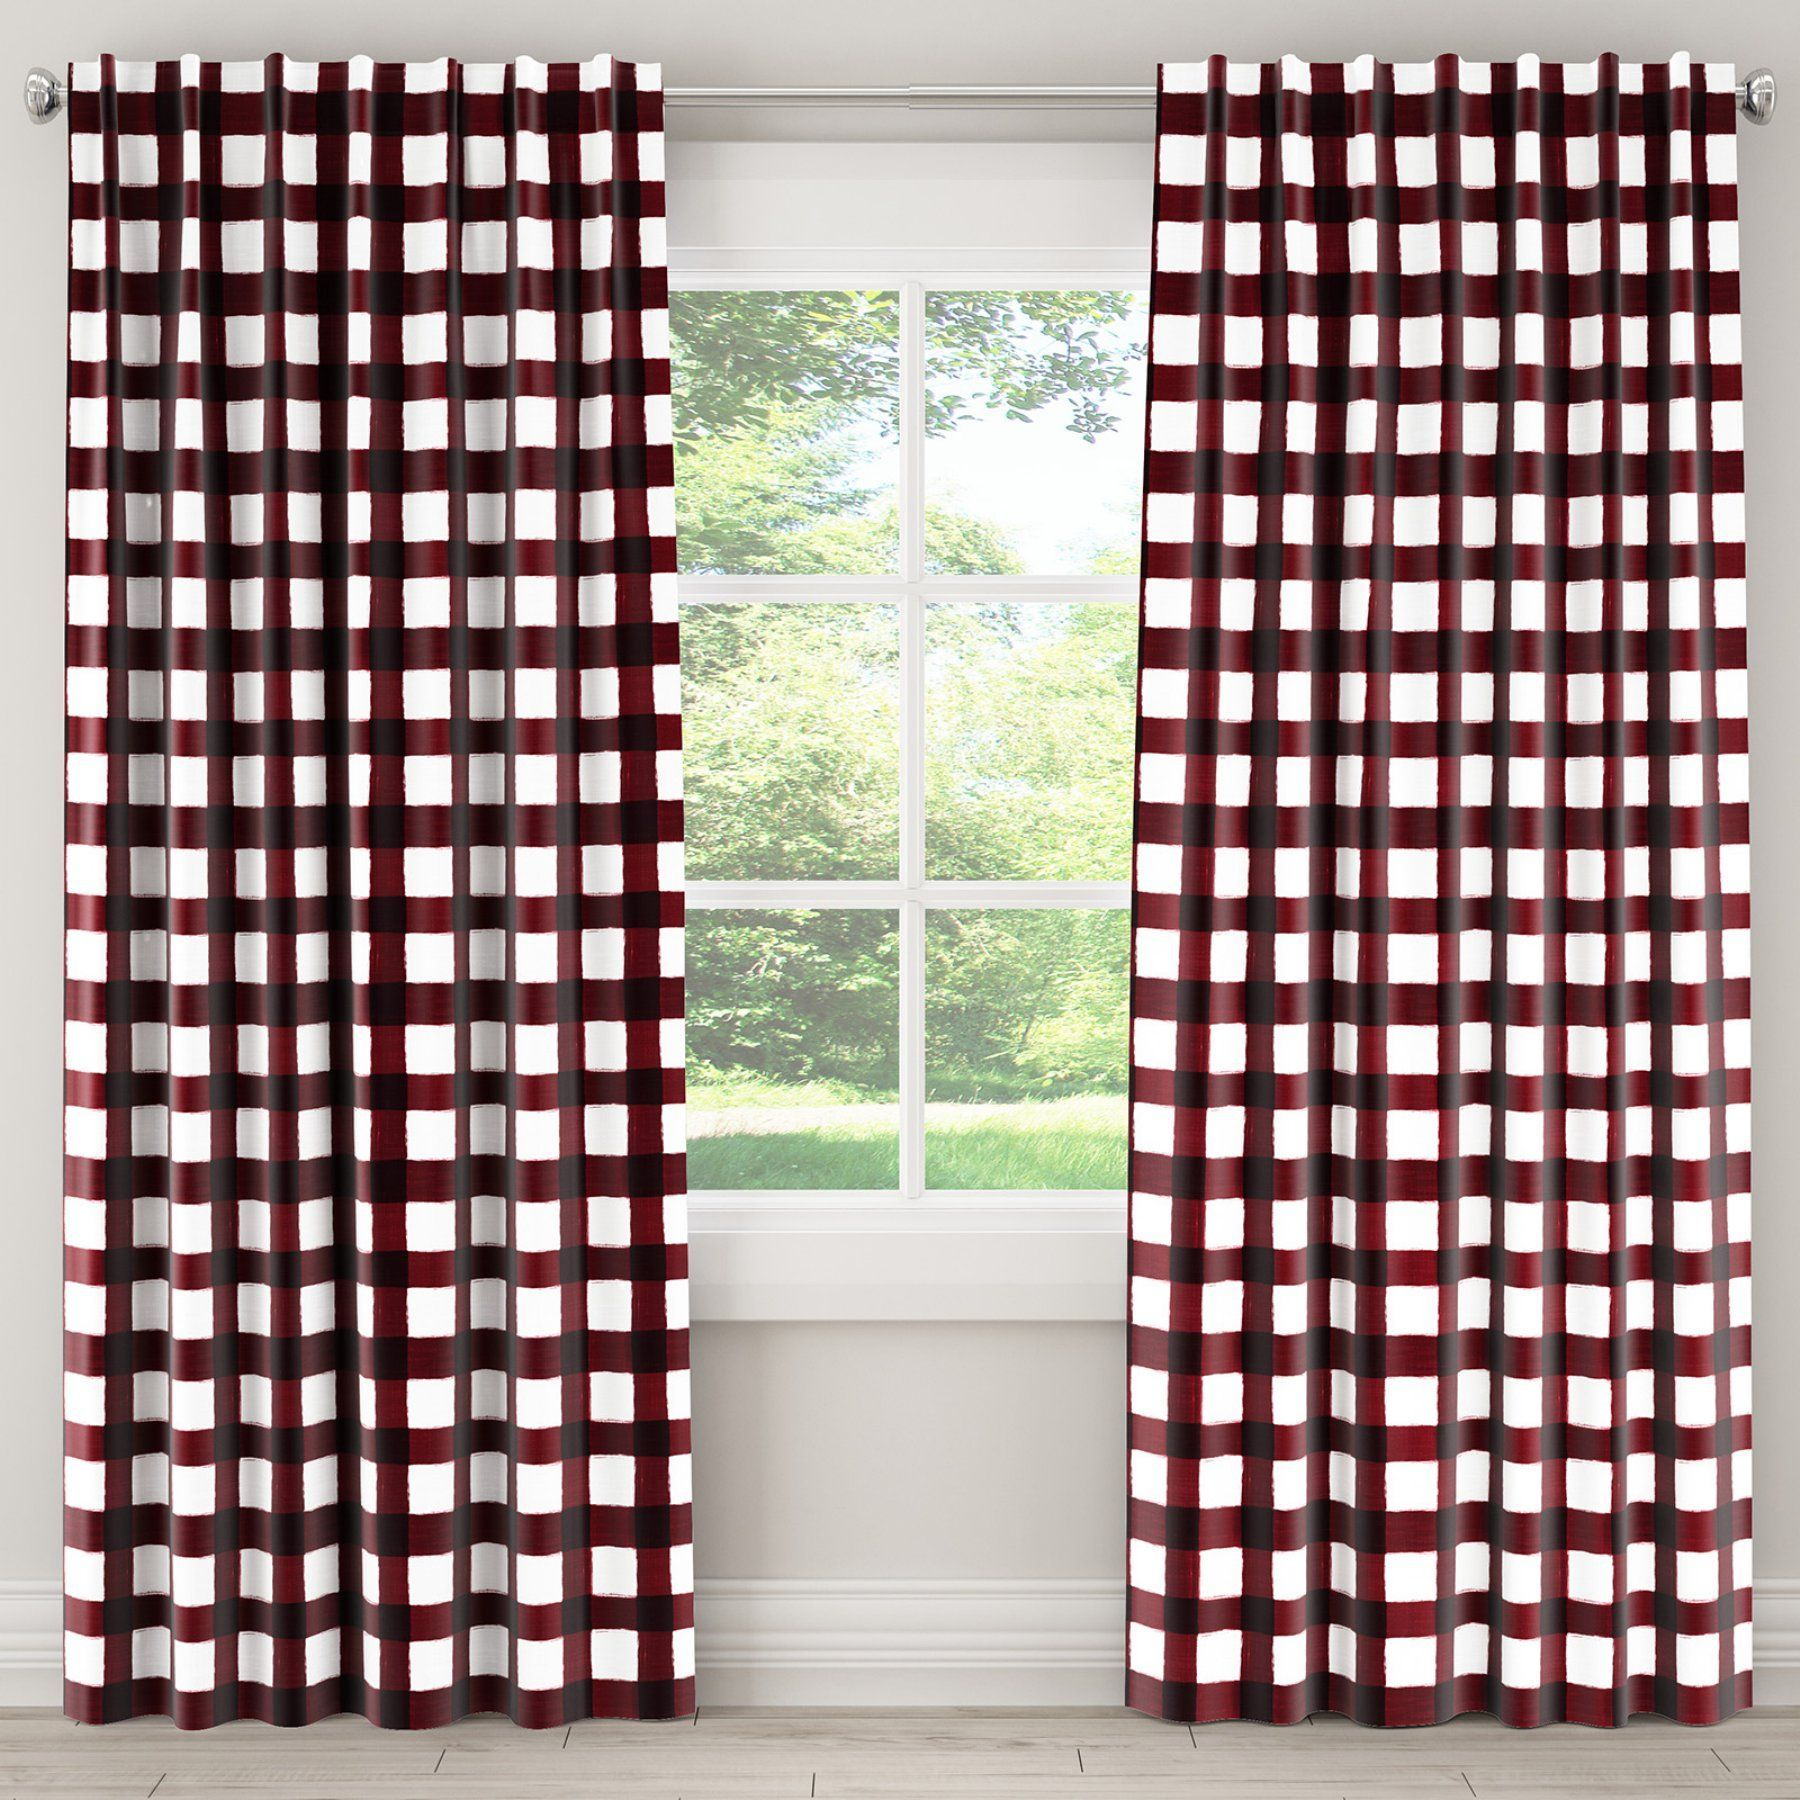 Skyline Furniture Buffalo Square Holiday Red Single Panel Throughout Cotton Blend Classic Checkered Decorative Window Curtains (View 18 of 20)